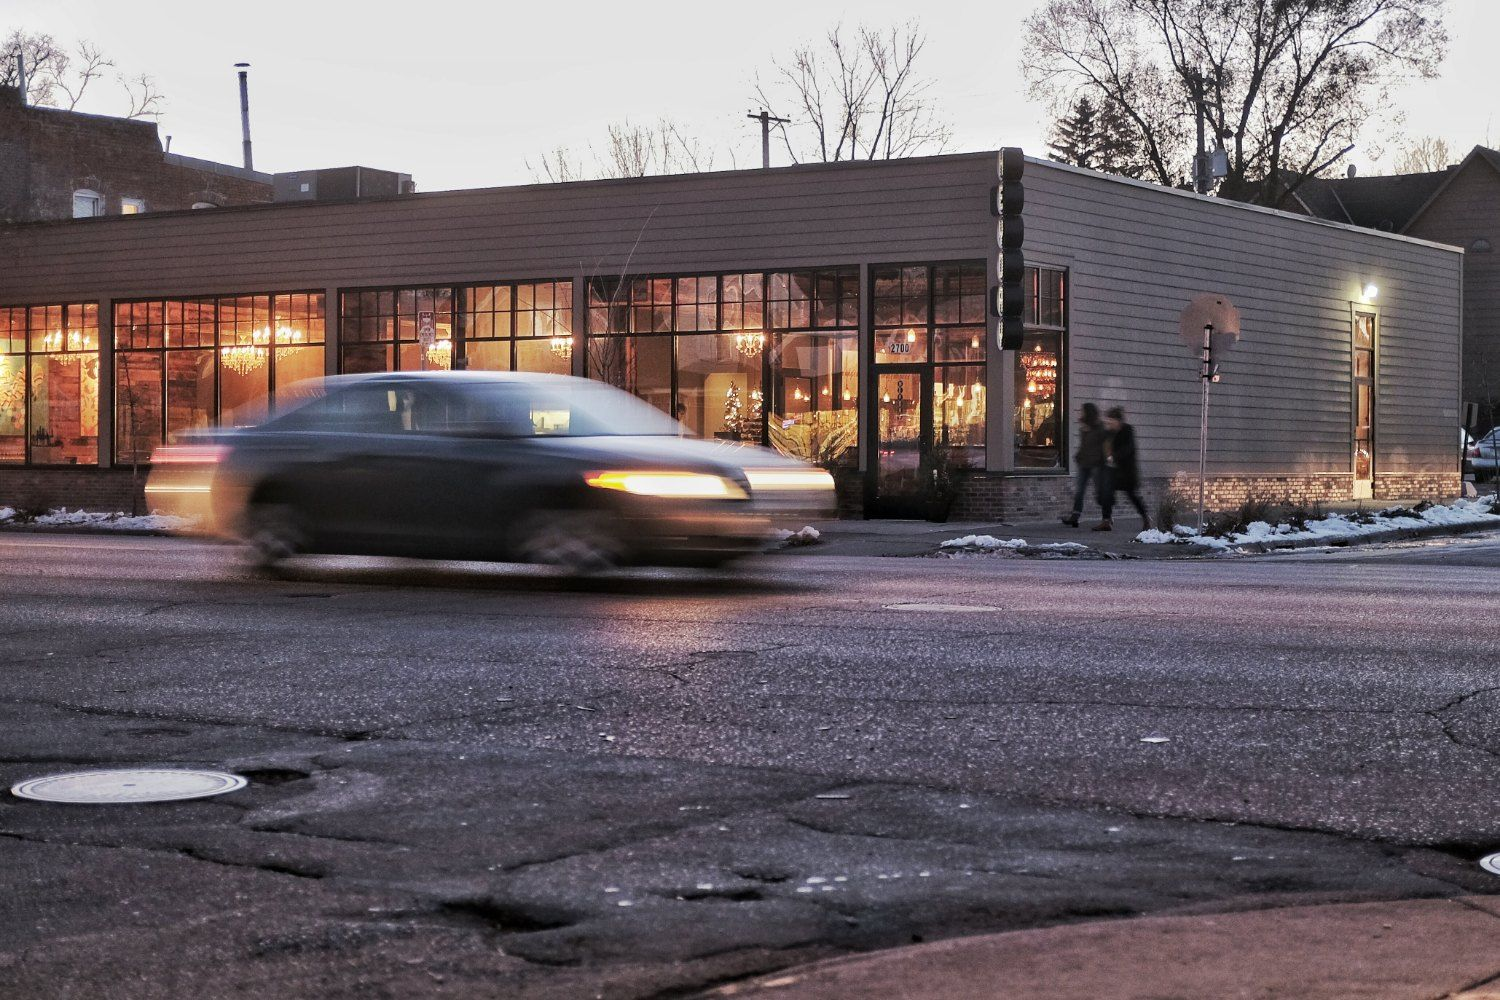 Lyndale Ave - http://keithbridges.photography/2015/12/04/lyndale-ave/